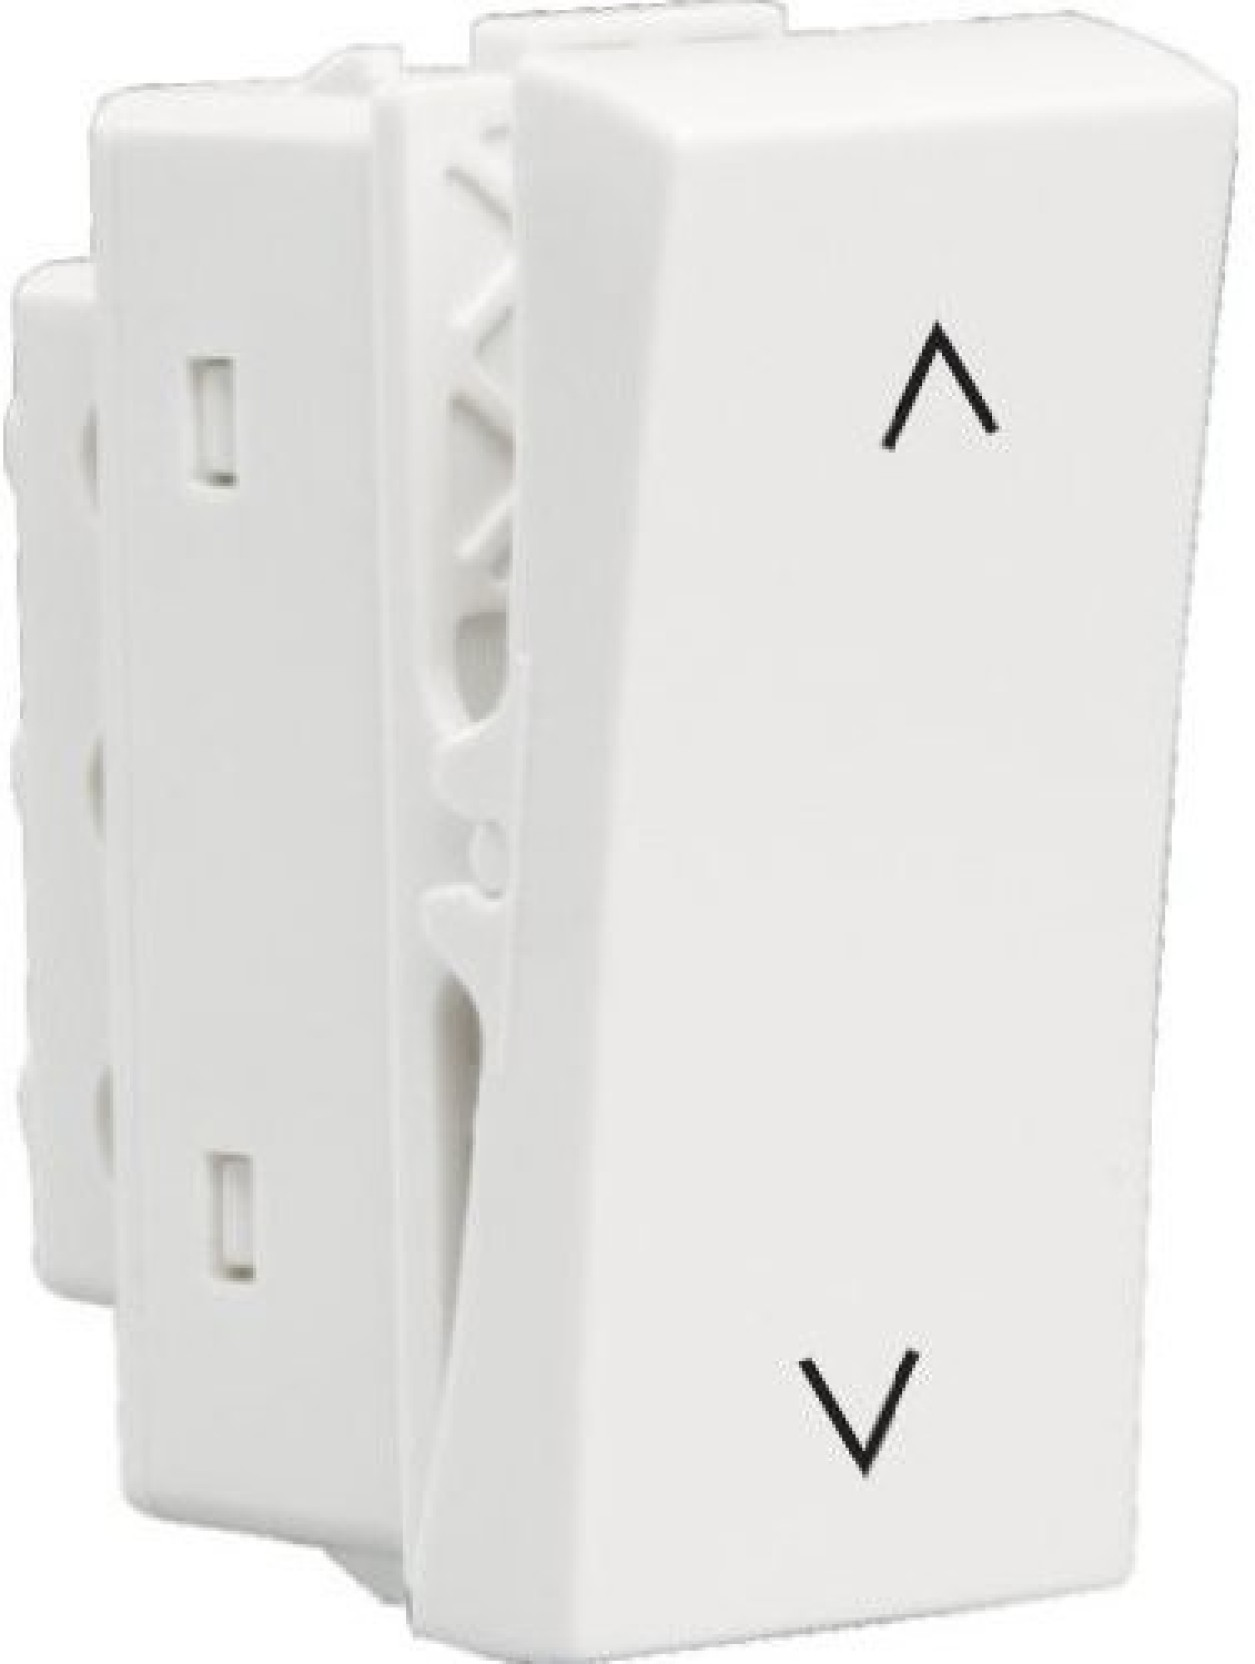 CRABTREE Triple Electrical dimmer switch 2 way stainless steel Brand new